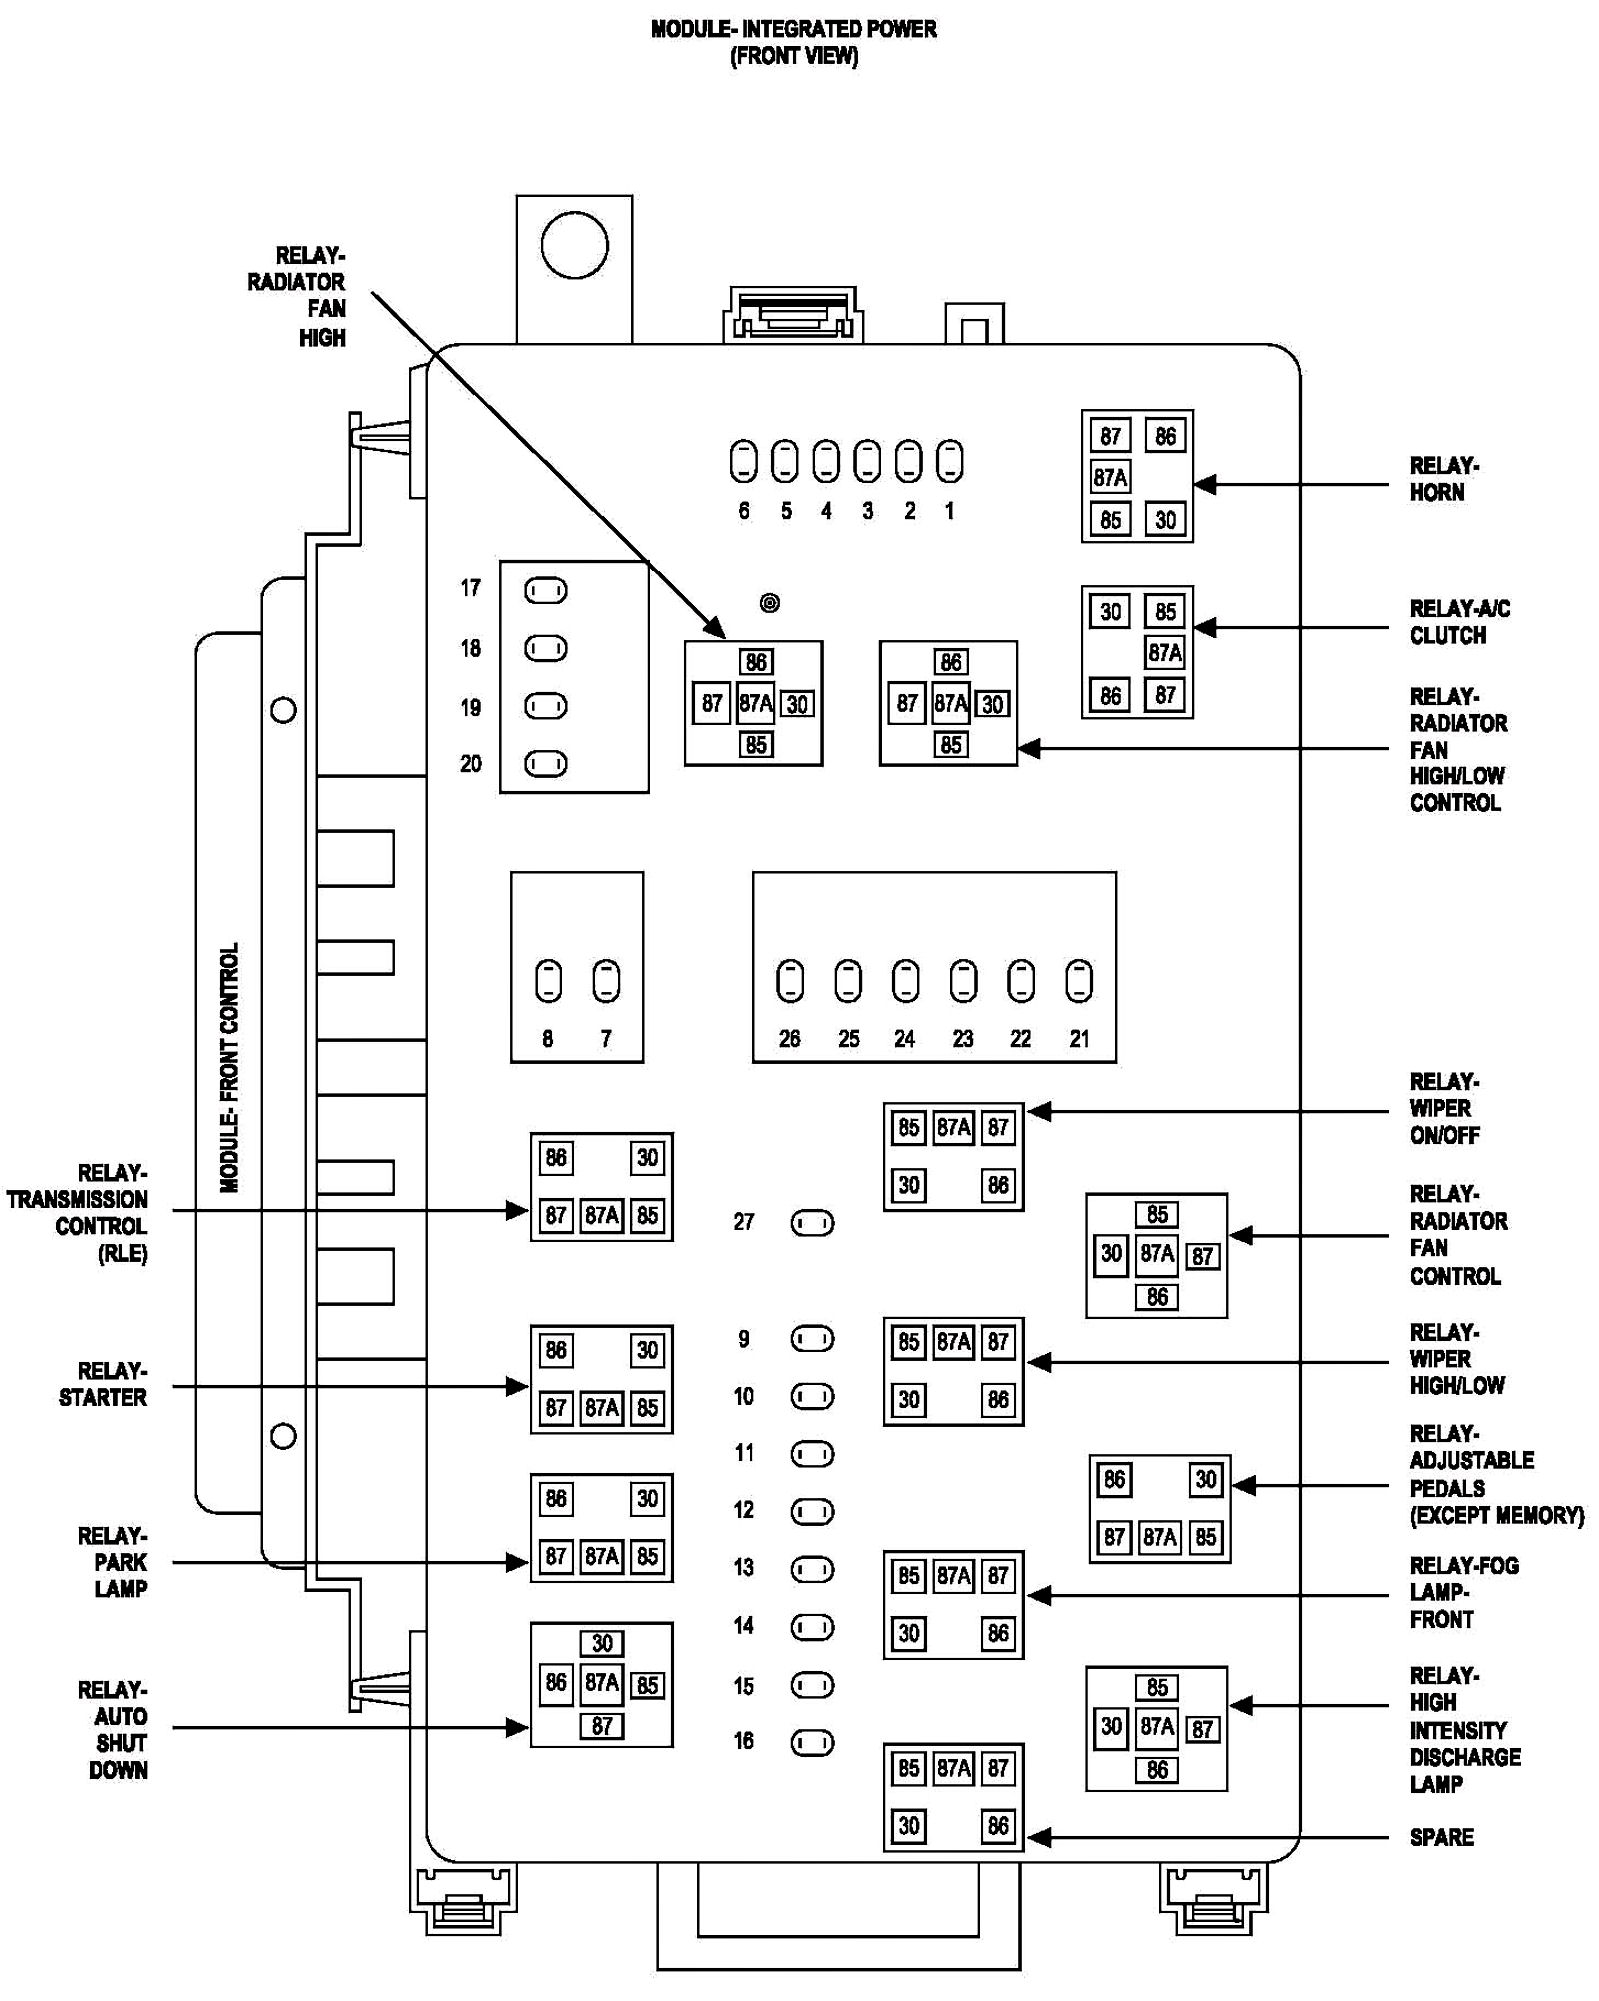 hight resolution of 2000 chrysler sebring fuse box diagram wiring schematic simple rh 50 aspire atlantis de 2004 chrysler sebring wiring schematics 2006 chrysler sebring fuse